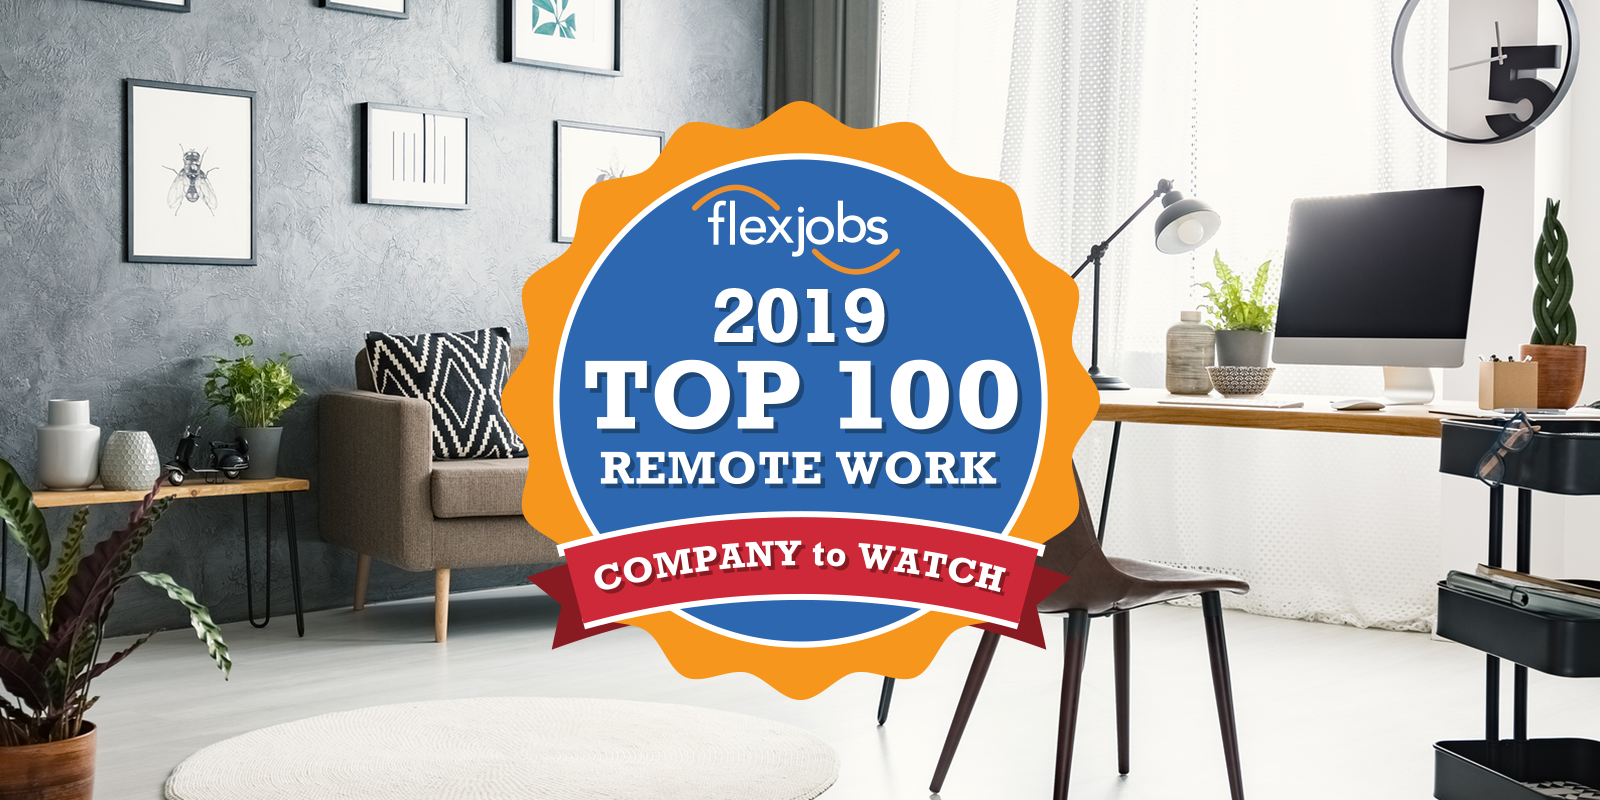 100 Top Companies with Remote Jobs in 2019 | FlexJobs